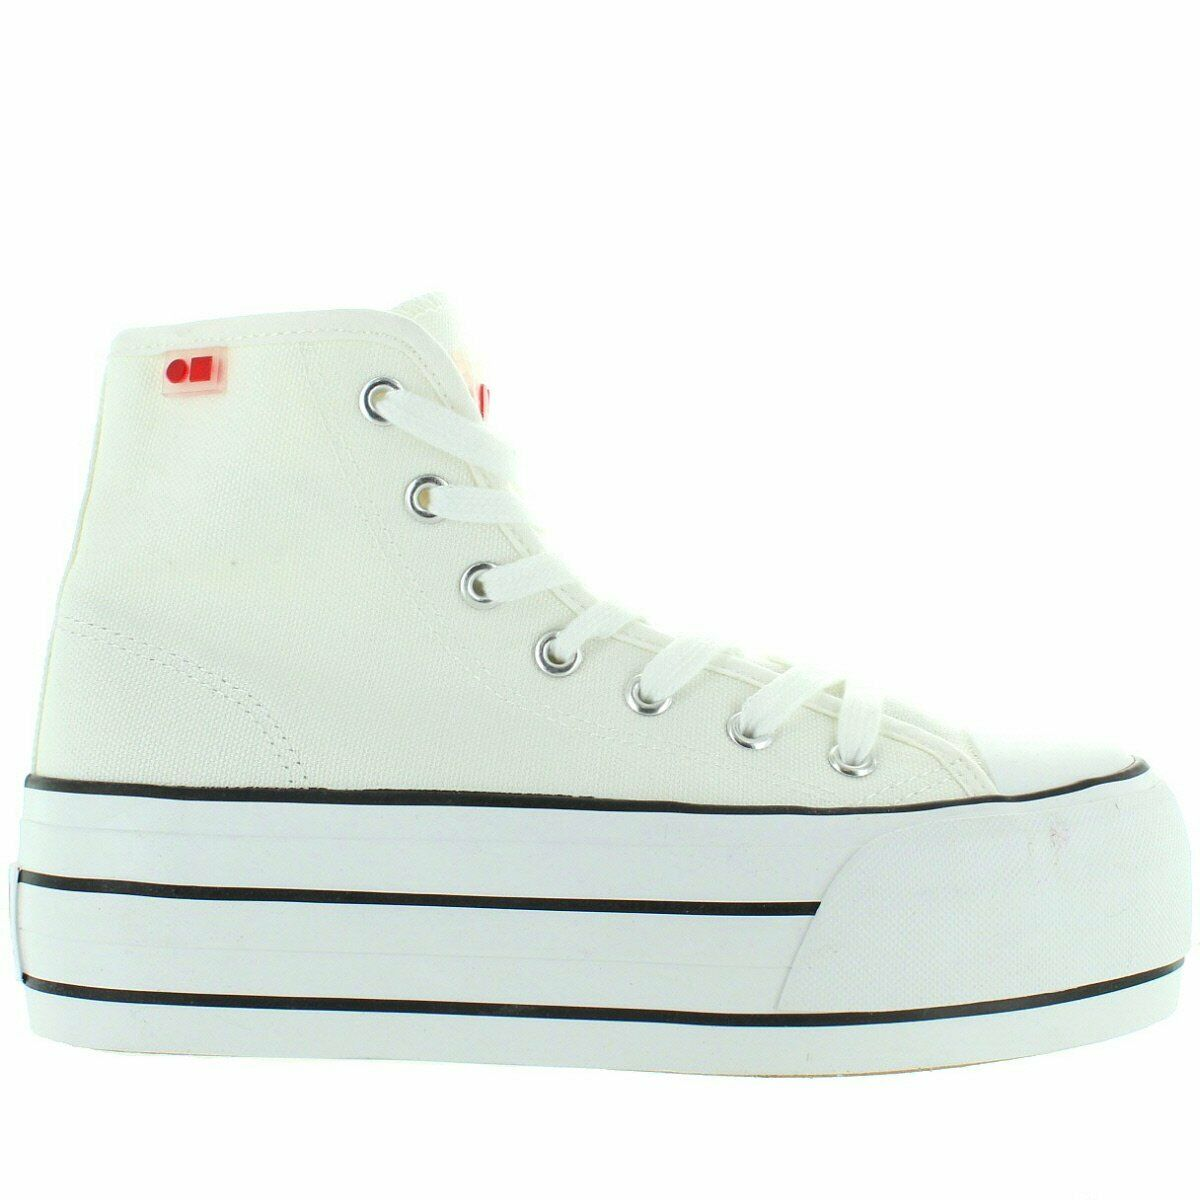 Coolway Rizzo - White Canvas High Top Mega Platform Lace Sneaker